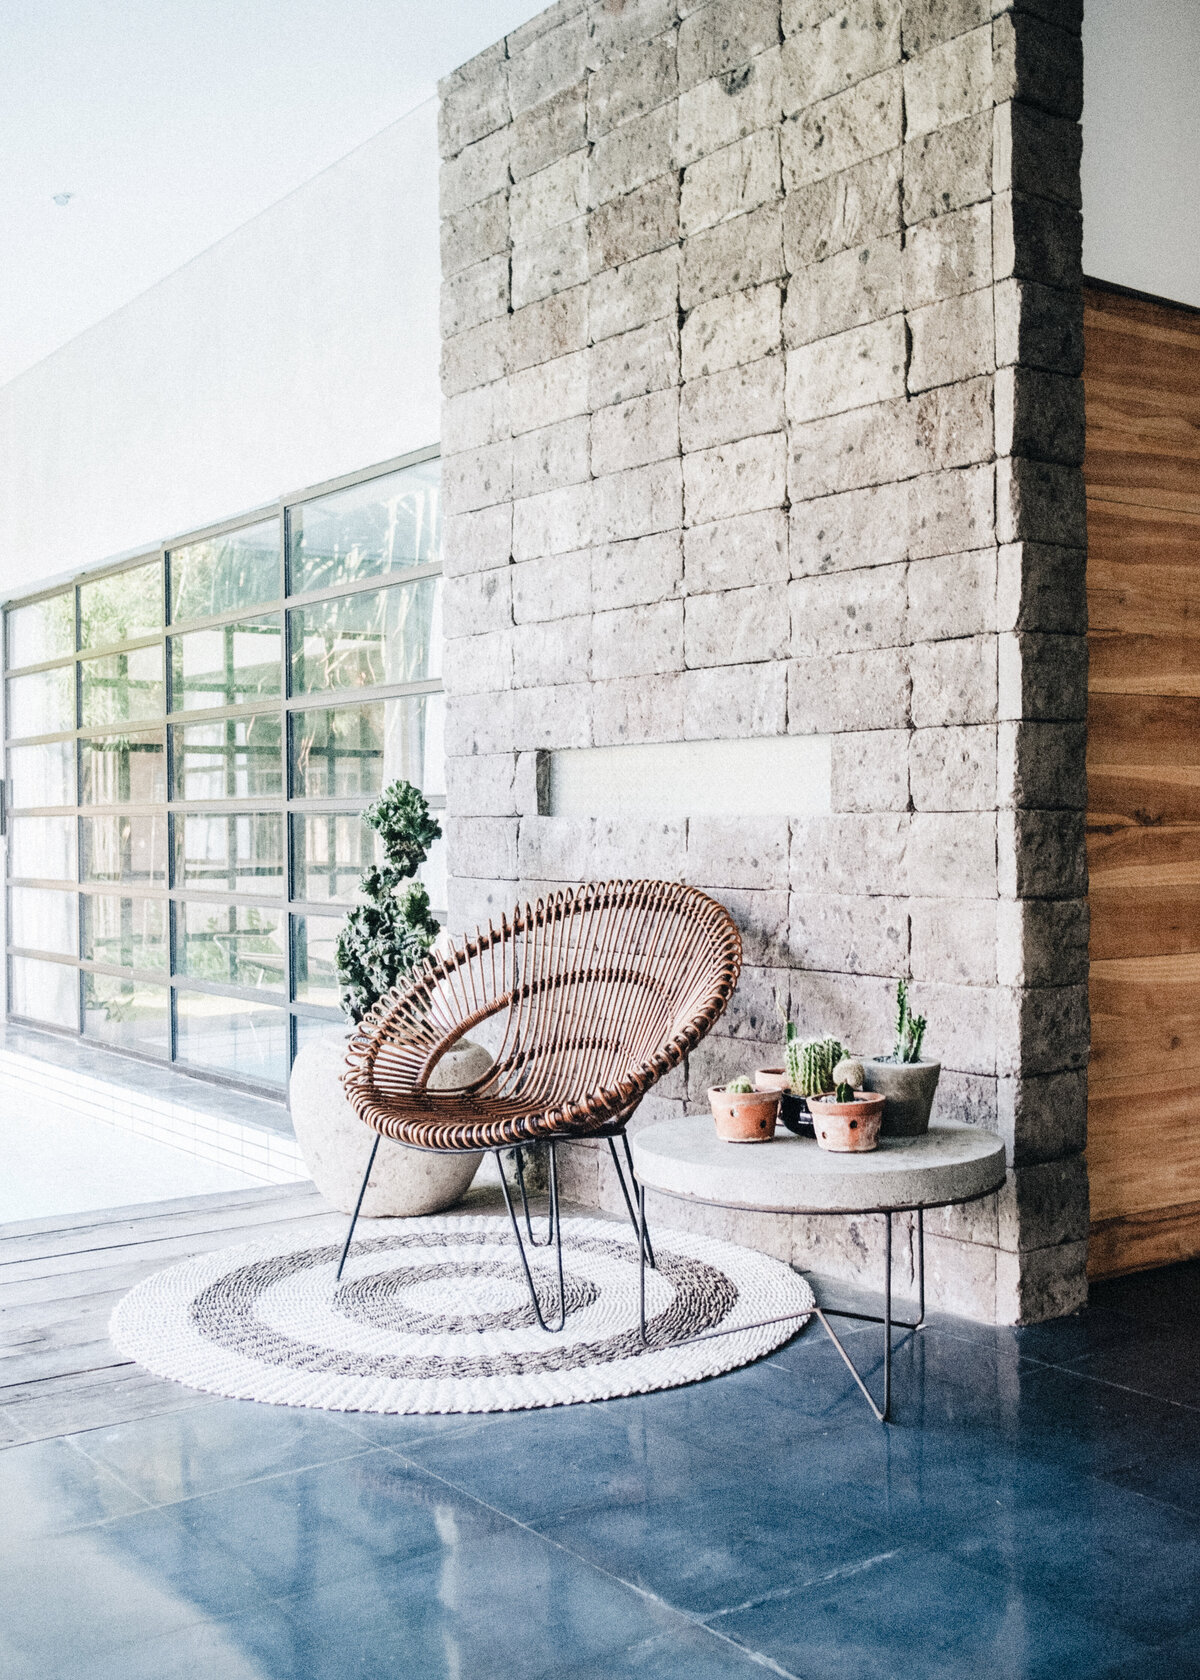 A rounded bohemian rattan is against an exterior stone wall, style with pots and a round rug.